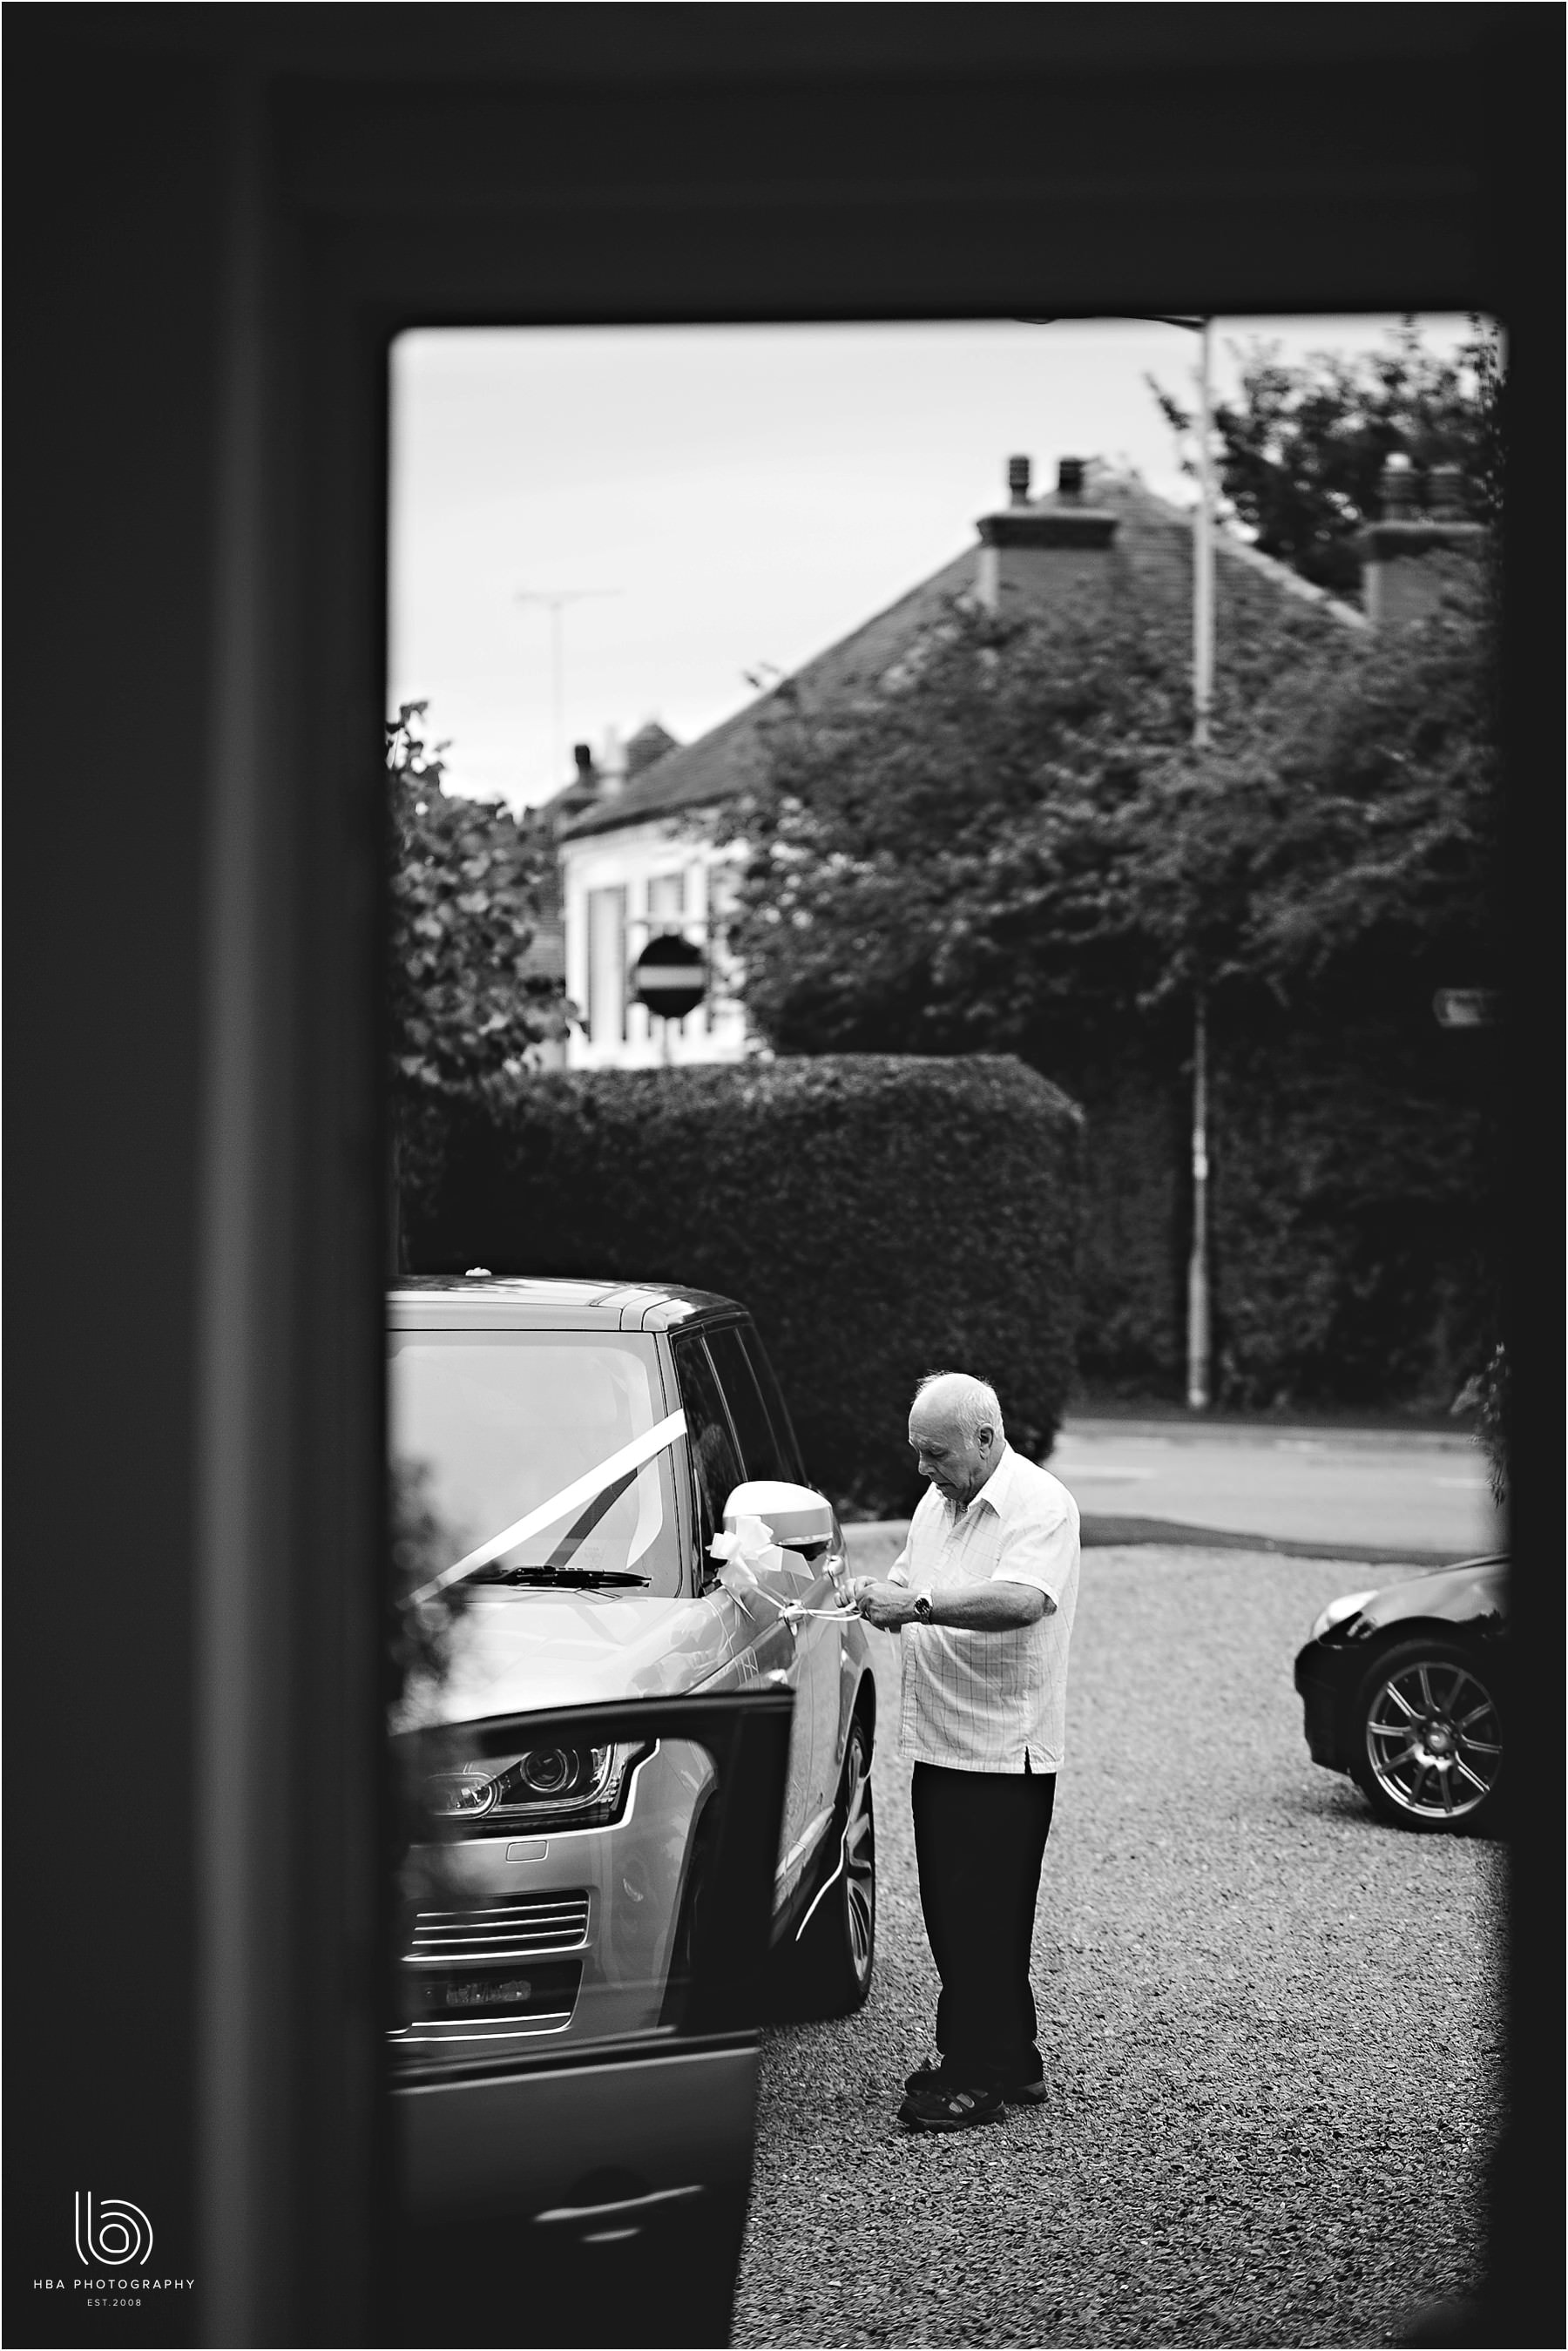 the father of the bride putting ribbons on the car